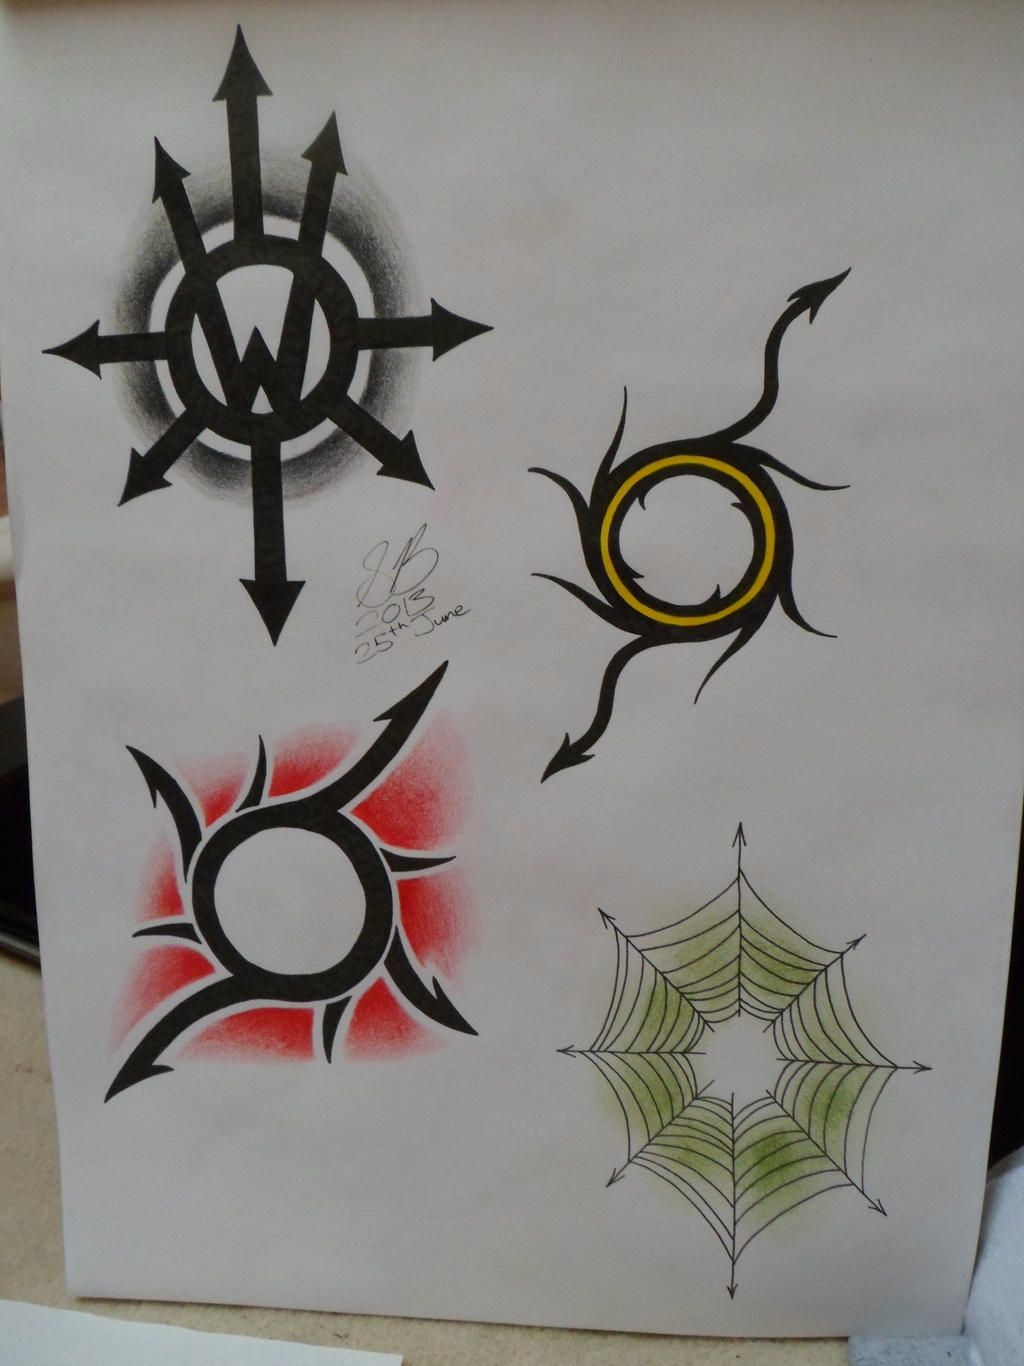 chaos symbol request by boulger on deviantart. Black Bedroom Furniture Sets. Home Design Ideas